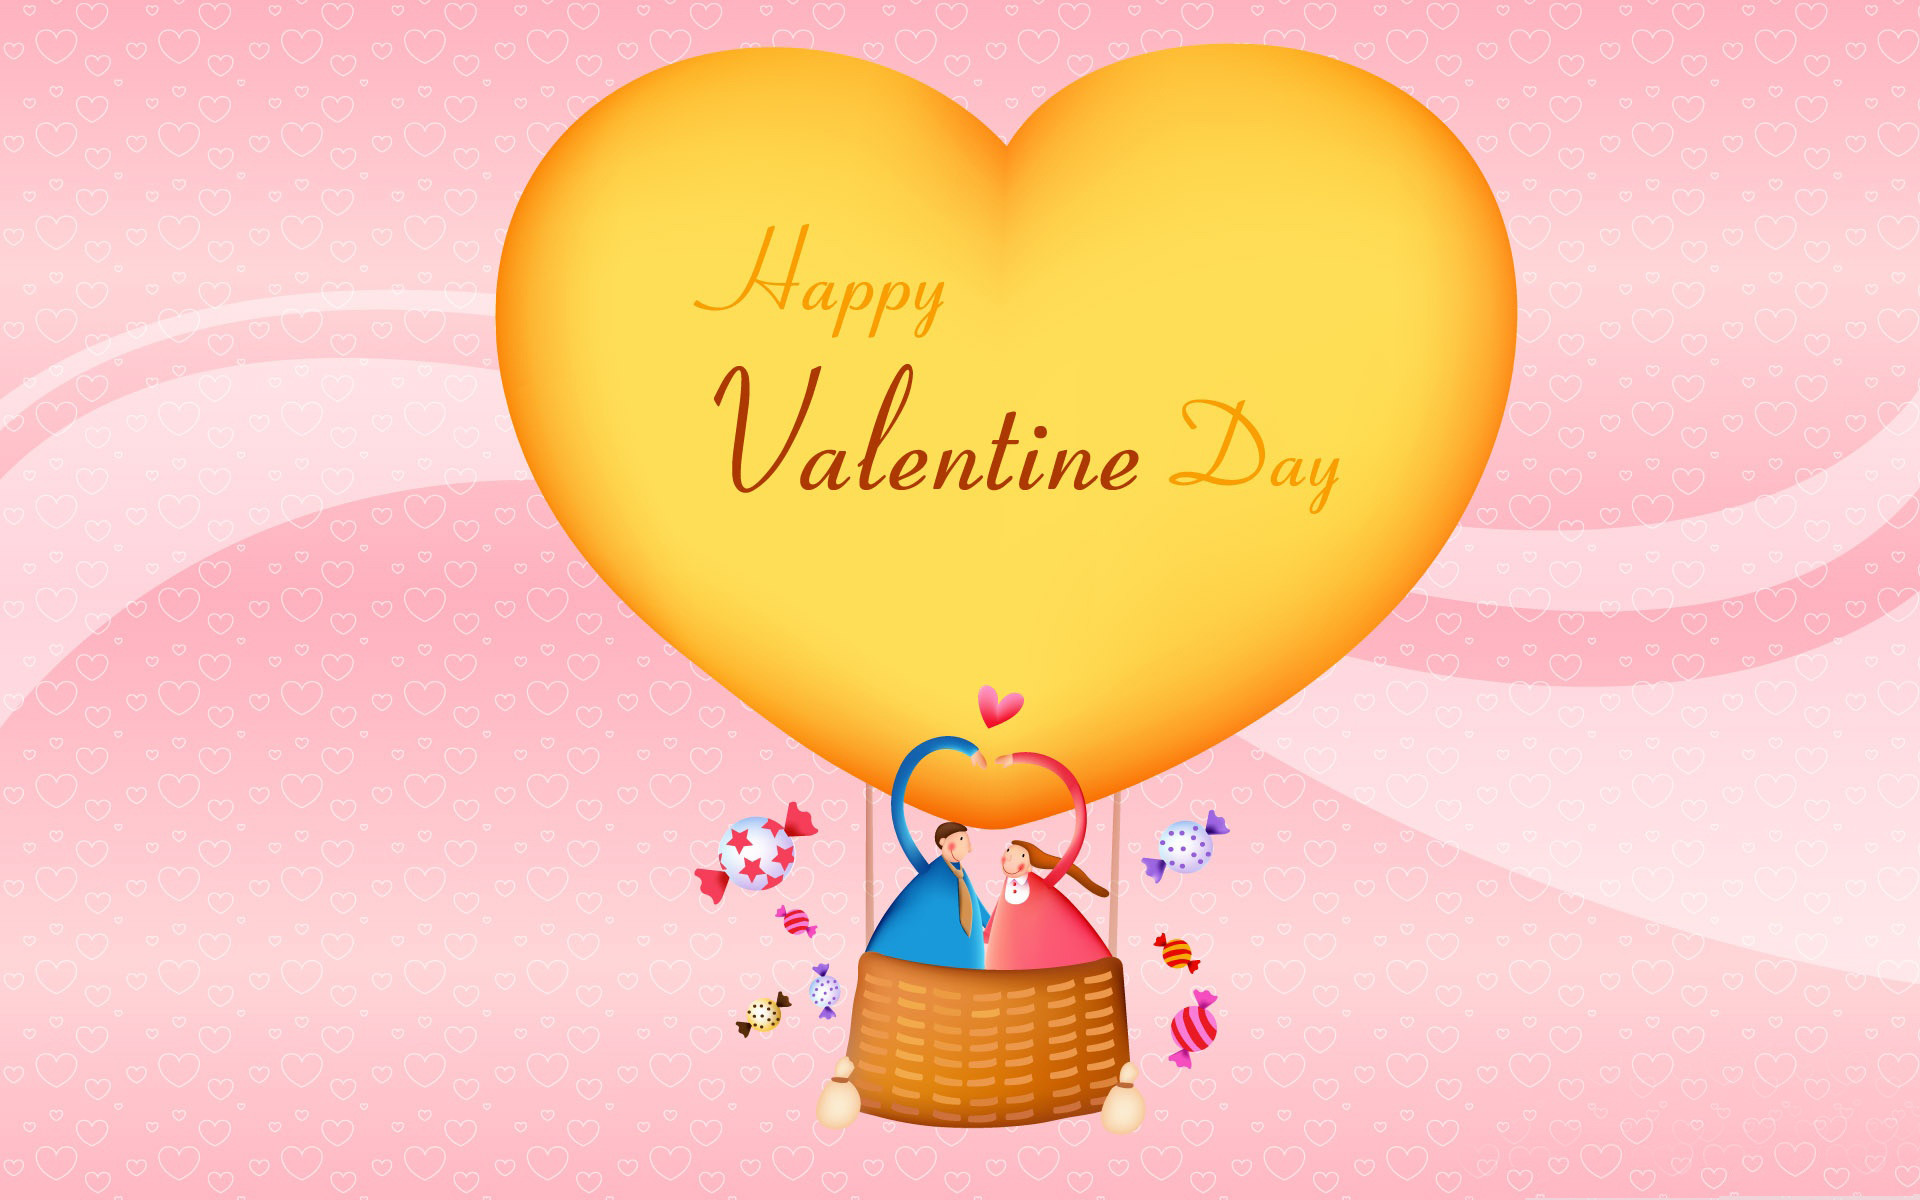 1920x1200 Valentine Day 2017 HD Images - Free download latest Valentine Day 2017 HD  Images for Computer, Mobile, iPhone, iPad or any Gadget at WallpapersChar…